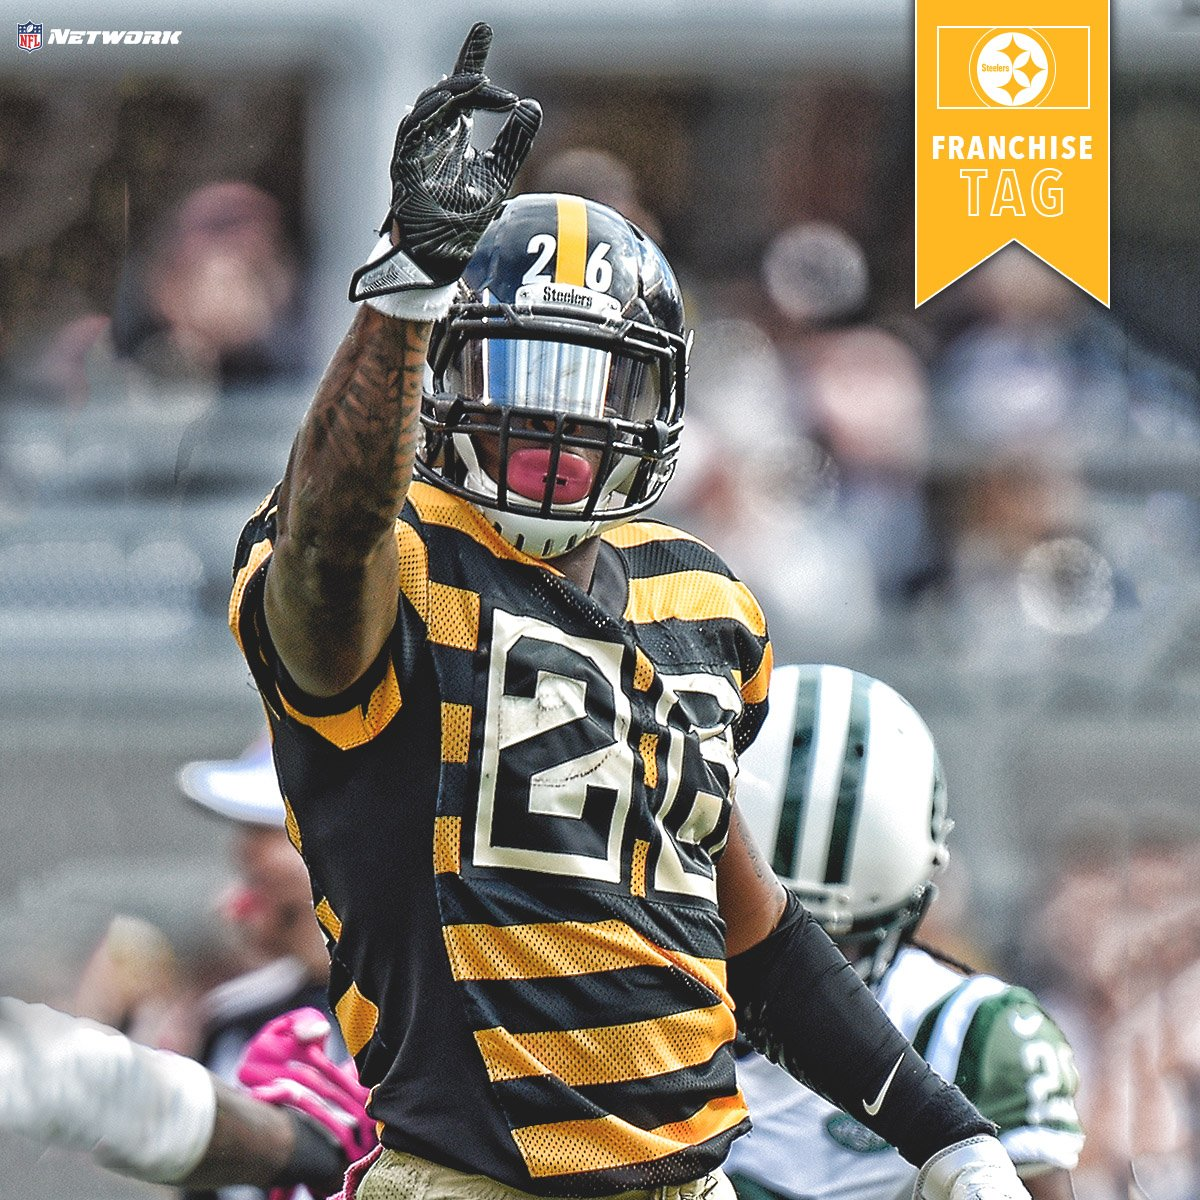 The @steelers have placed the exclusive franchise tag on RB Le'Veon Be...